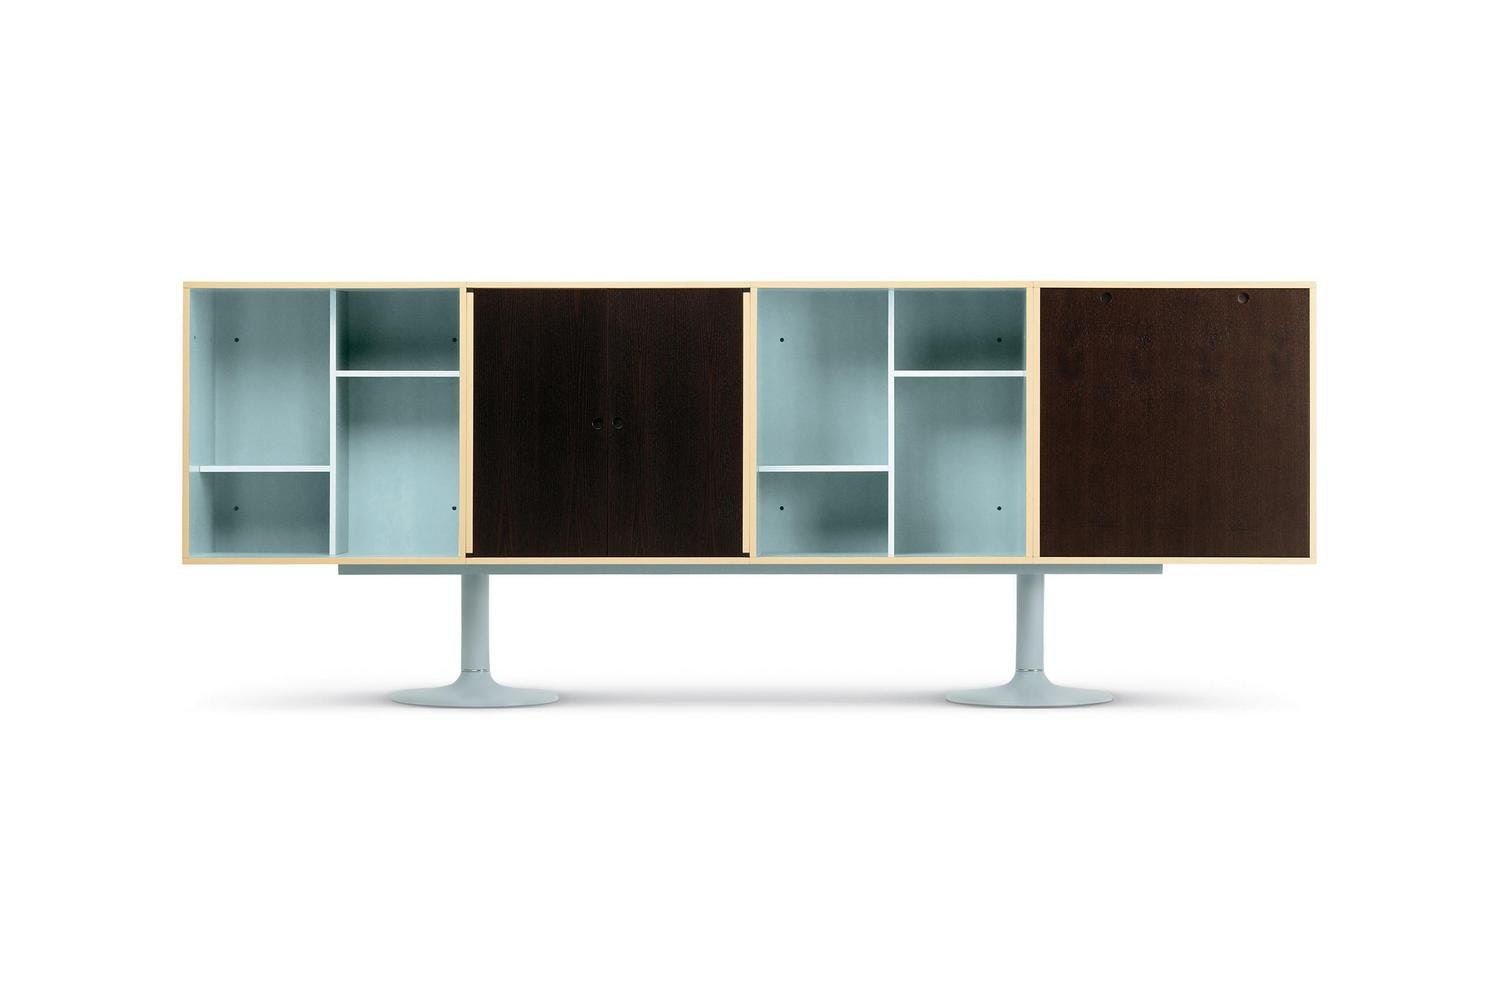 LC Casiers Standard Storage Units by Le Corbusier, Pierre Jeanneret and Charlotte Perriand for Cassina